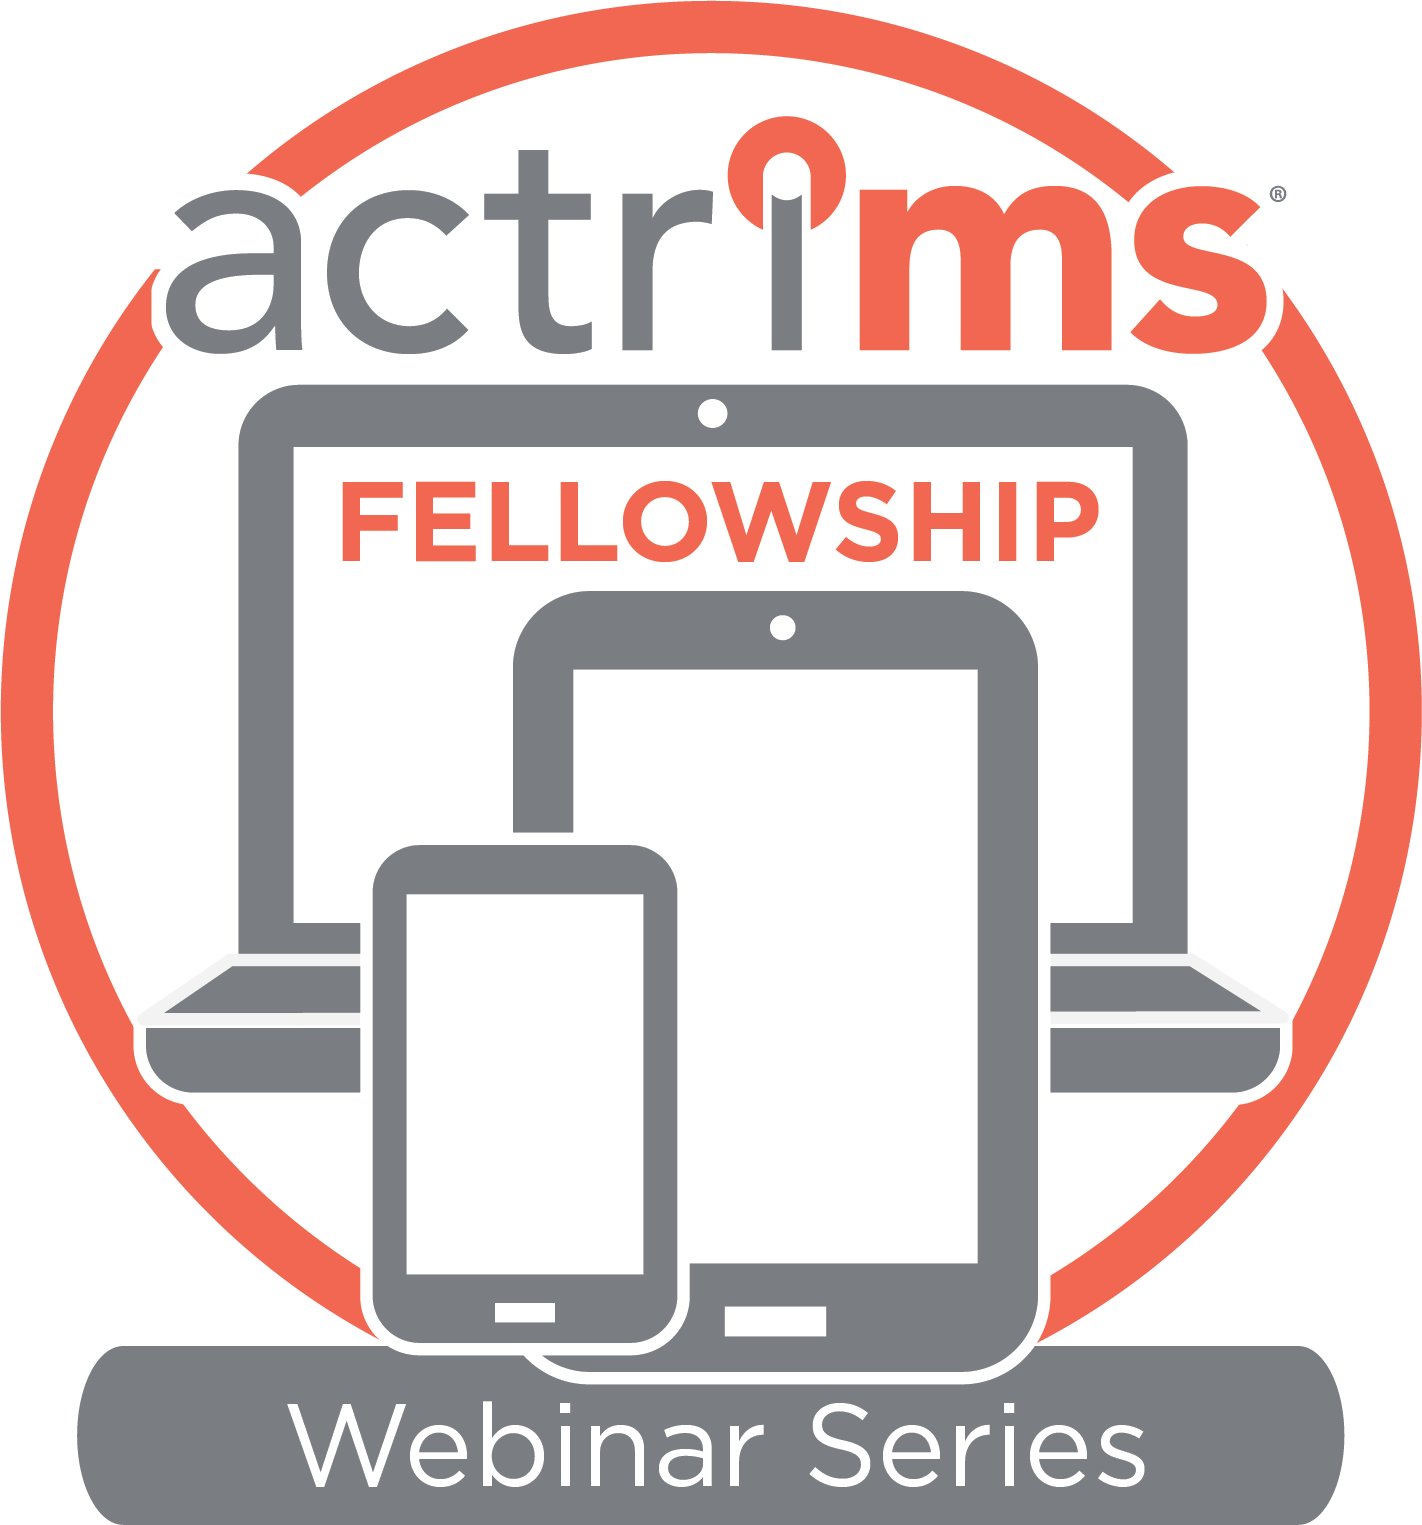 Fellowship Webinar